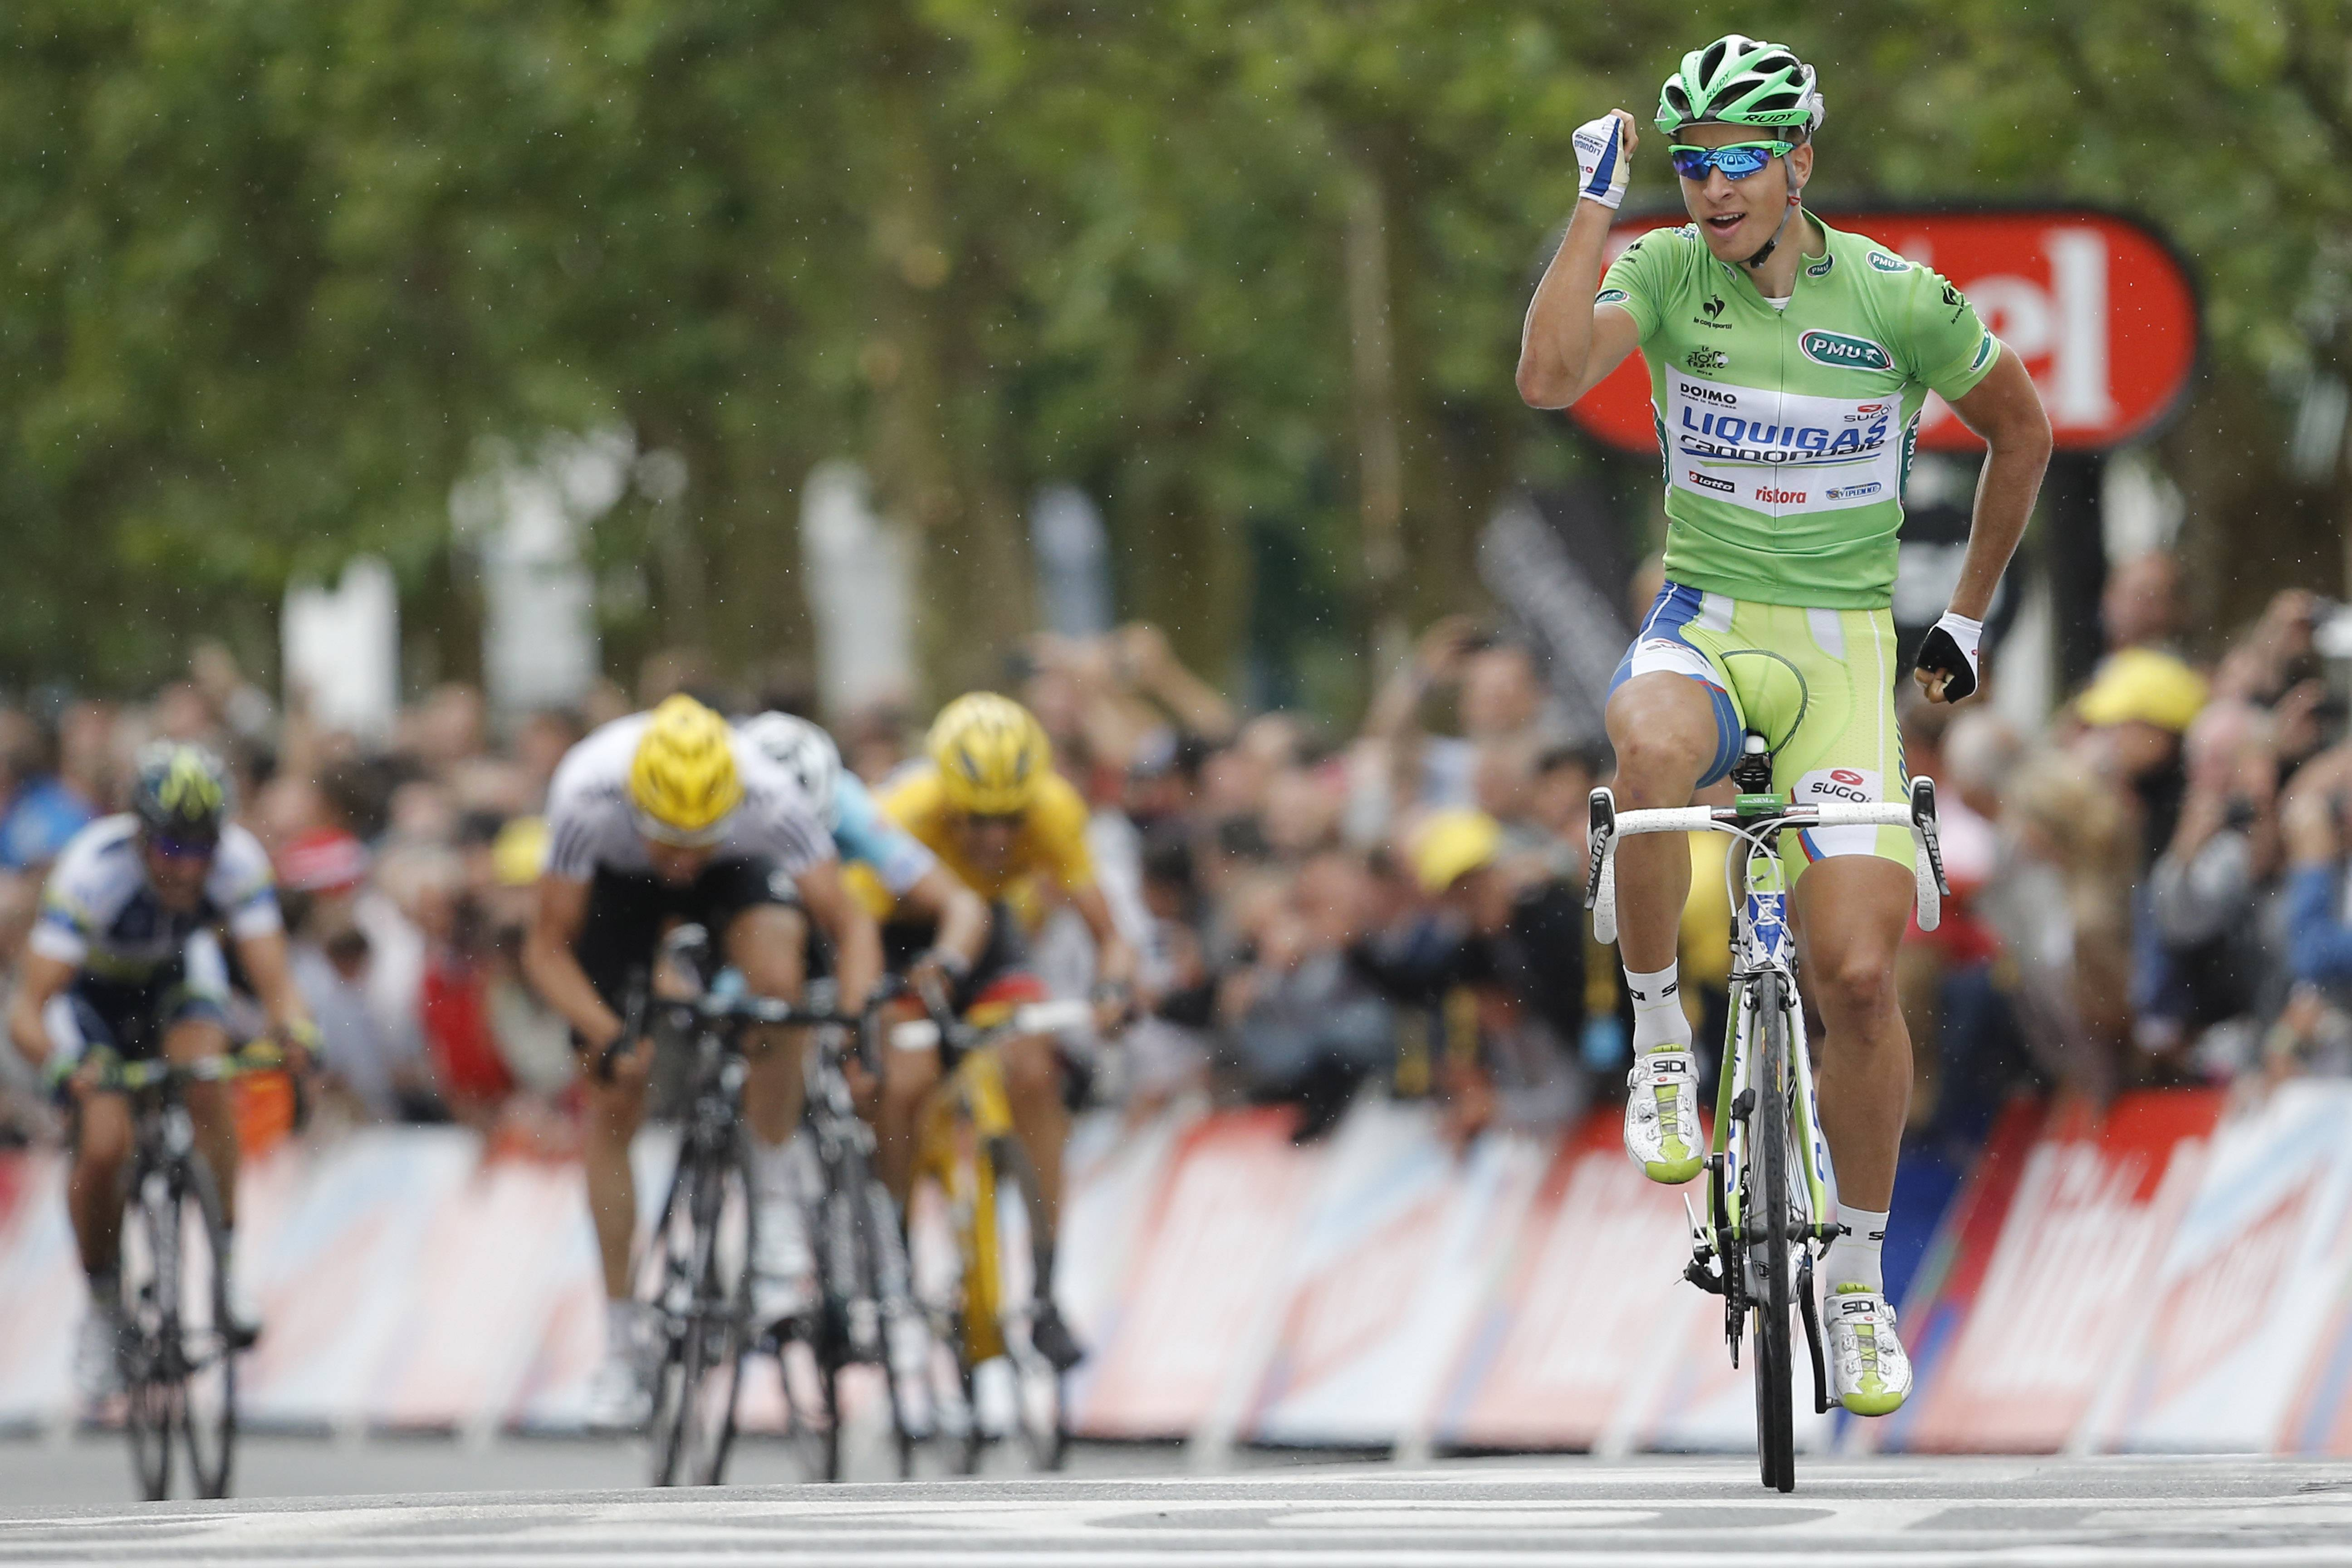 Peter Sagan celebrates Tuesday as he crosses the finish line ahead of Fabian Cancellara, wearing the overall leader's yellow jersey, second right, Peter Velits, third from right, and Edvald Boasson Hagen, second left, to win the third stage of the Tour de France cycling race over 122.4 miles.